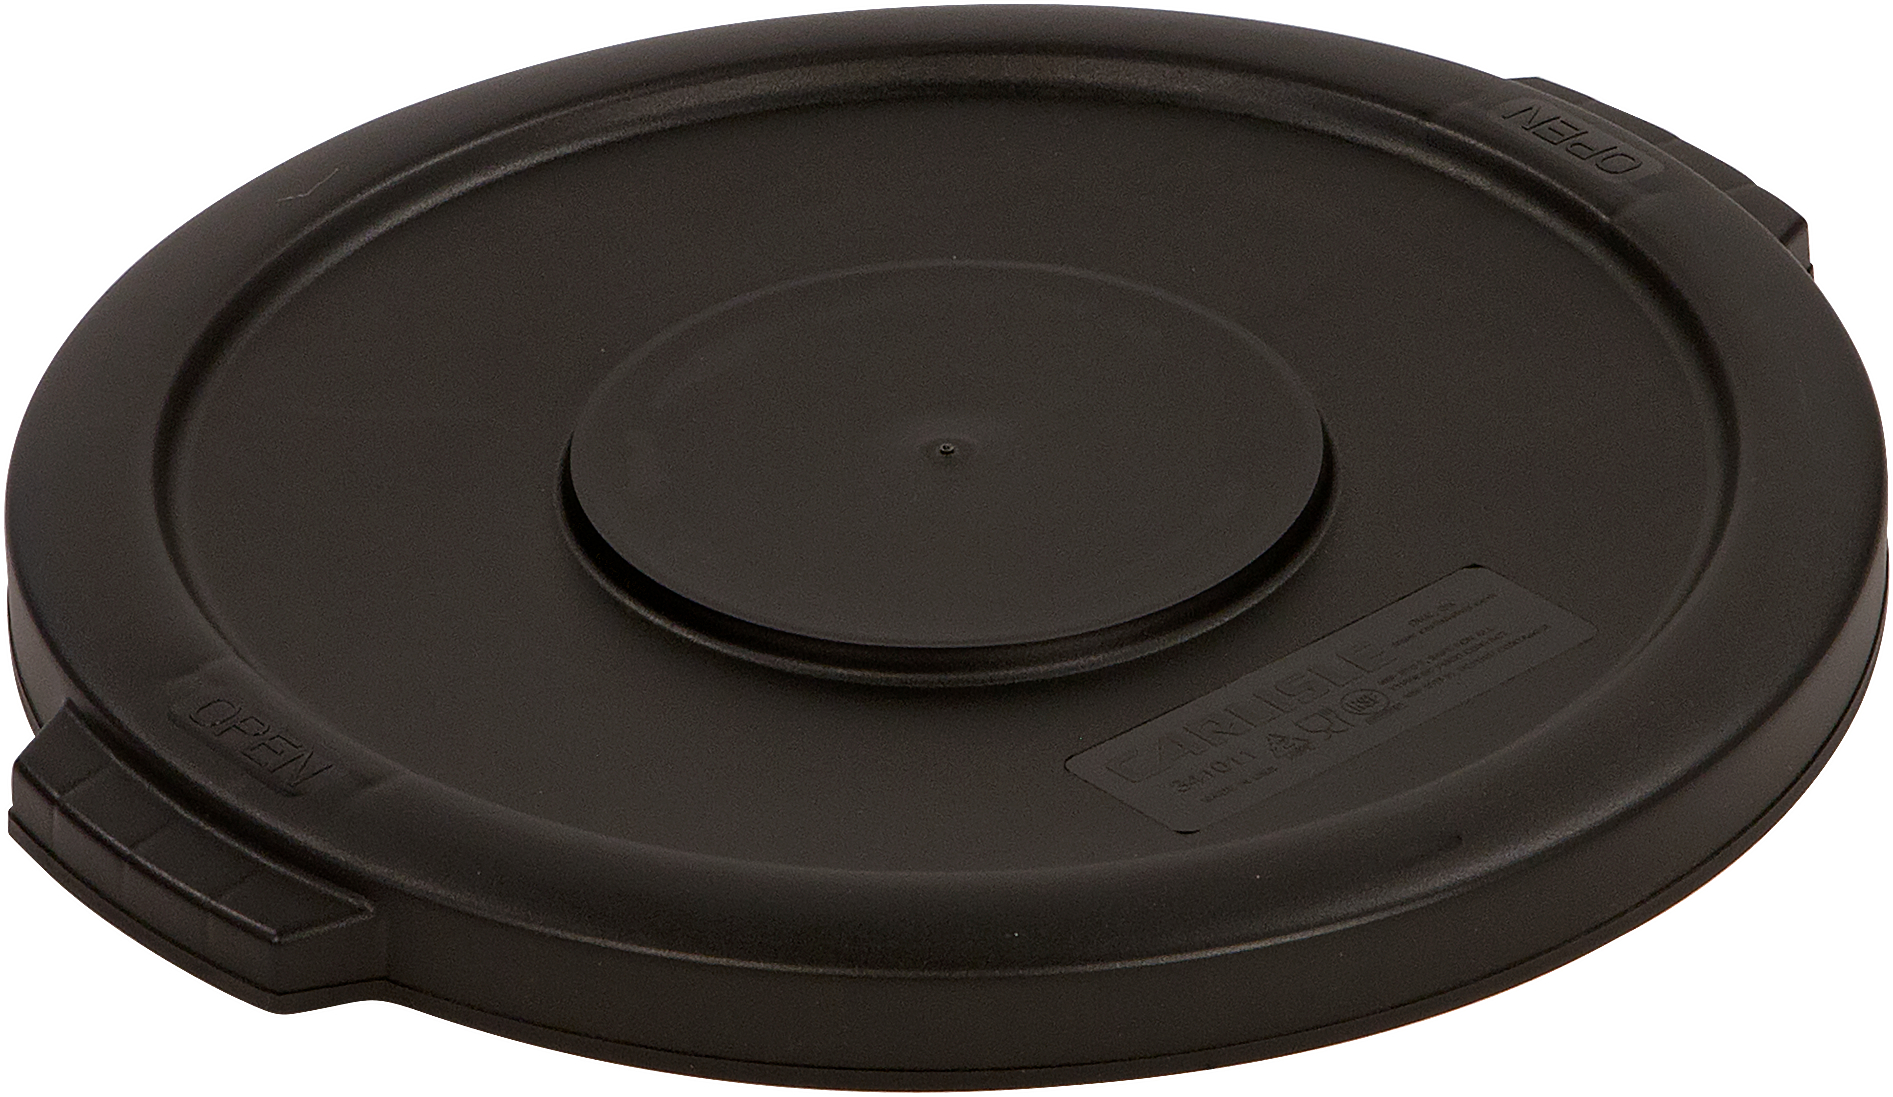 Bronco Round Waste Bin Food Container Lid 10 Gallon - Black